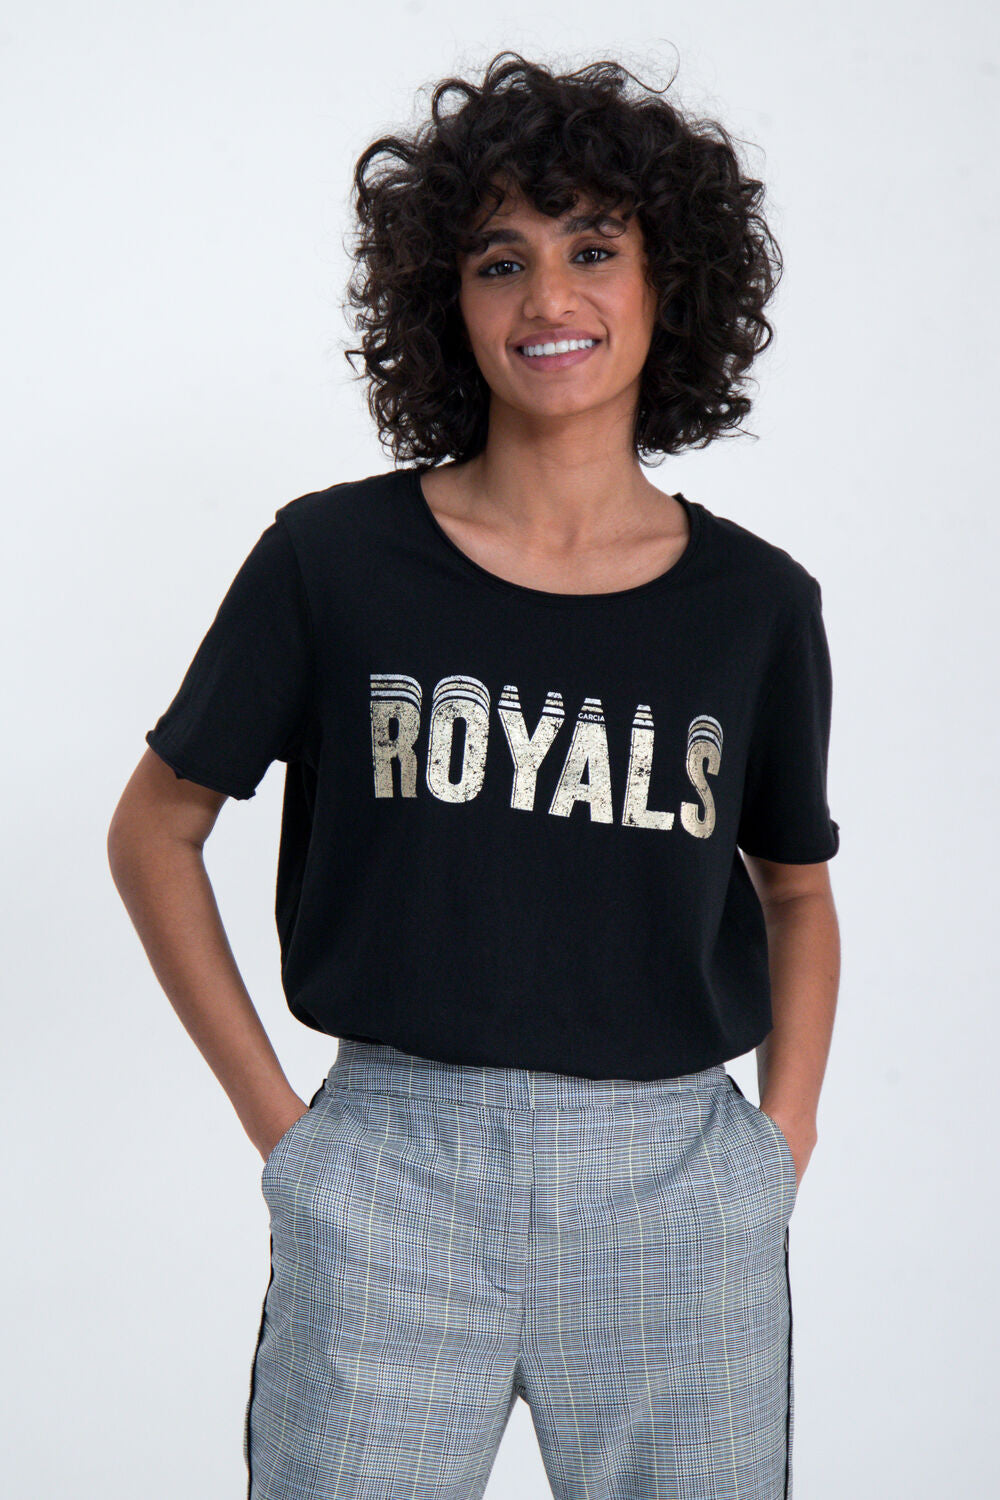 royals graphic tee